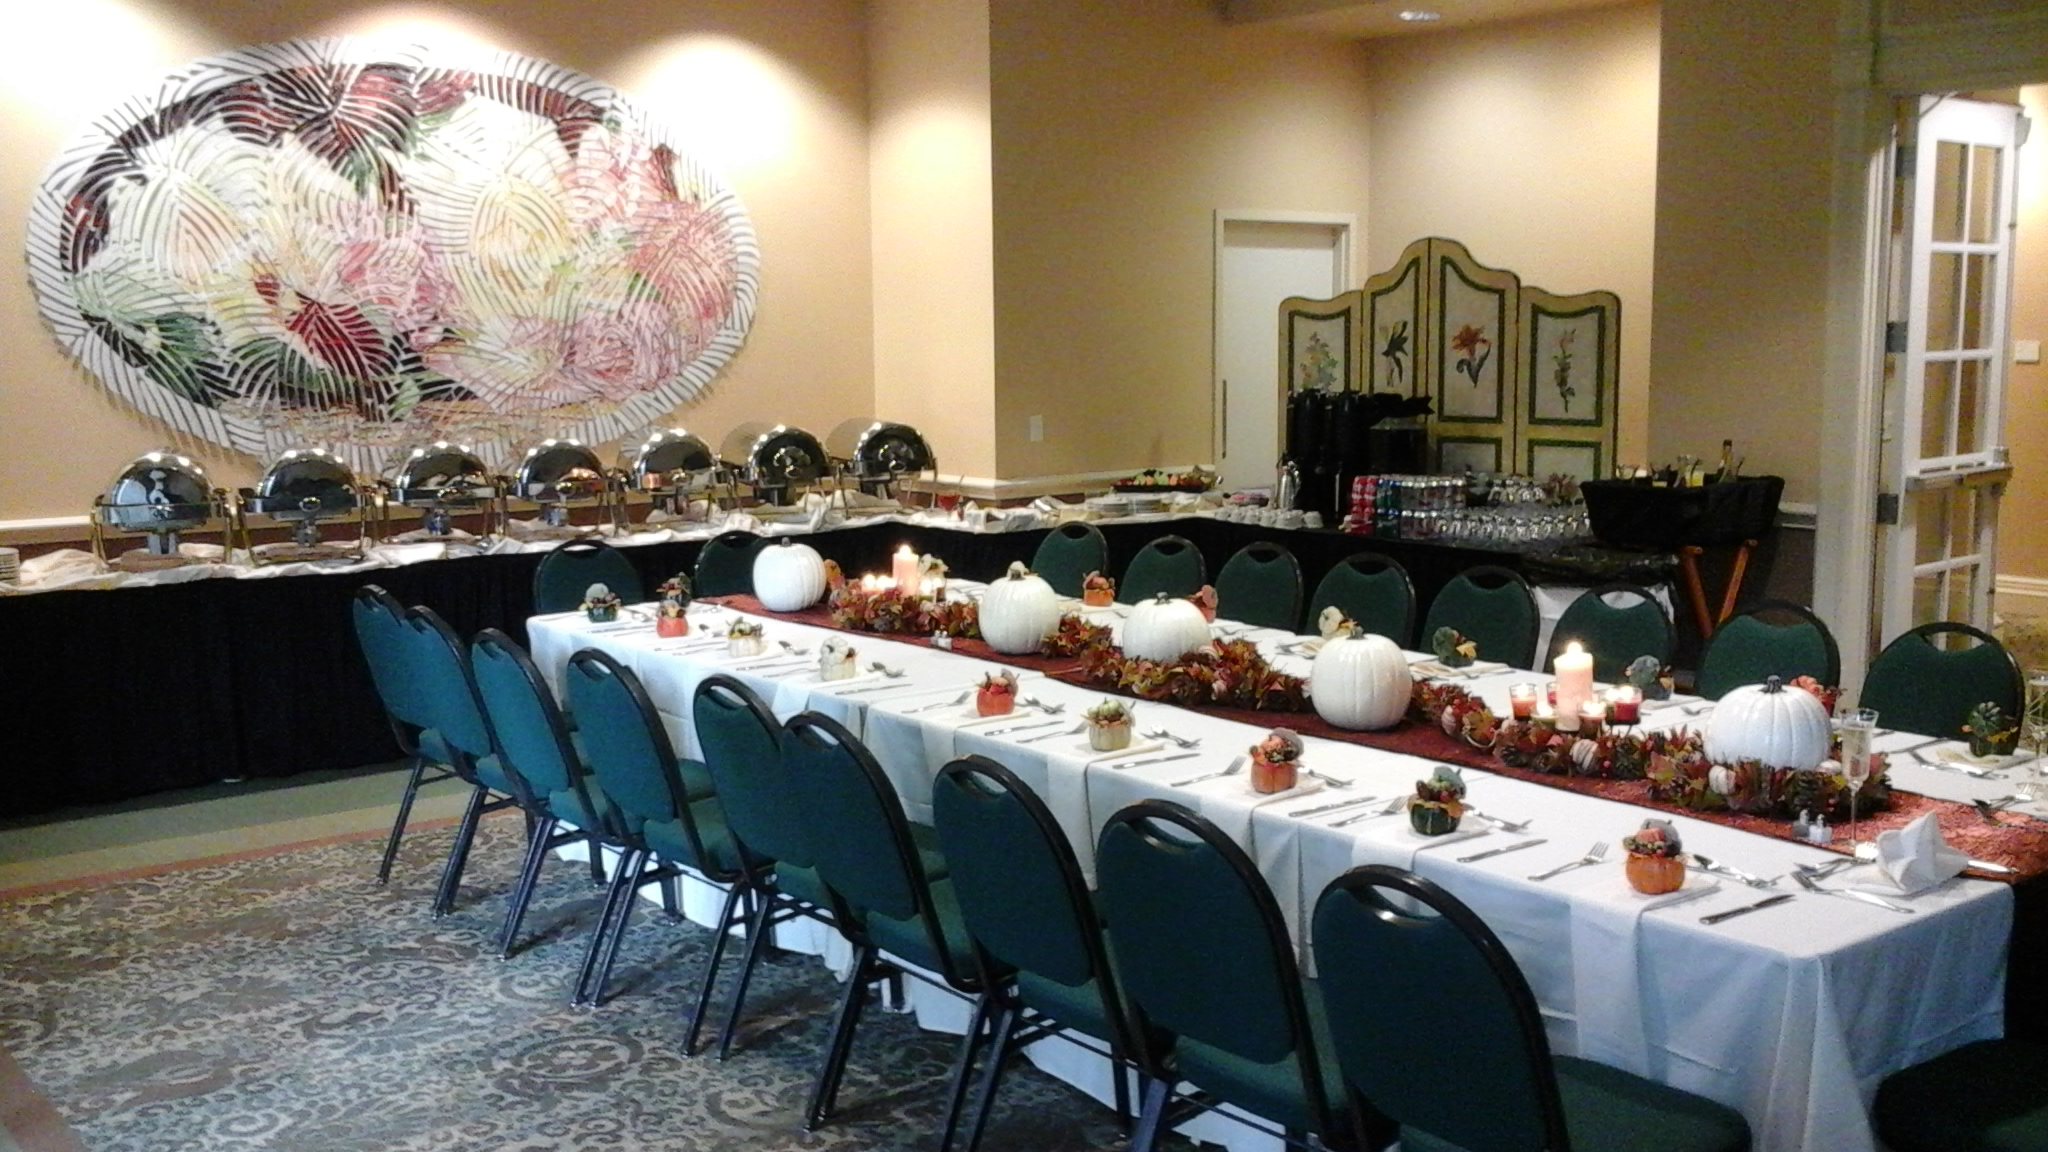 fall table decor and seating with buffet